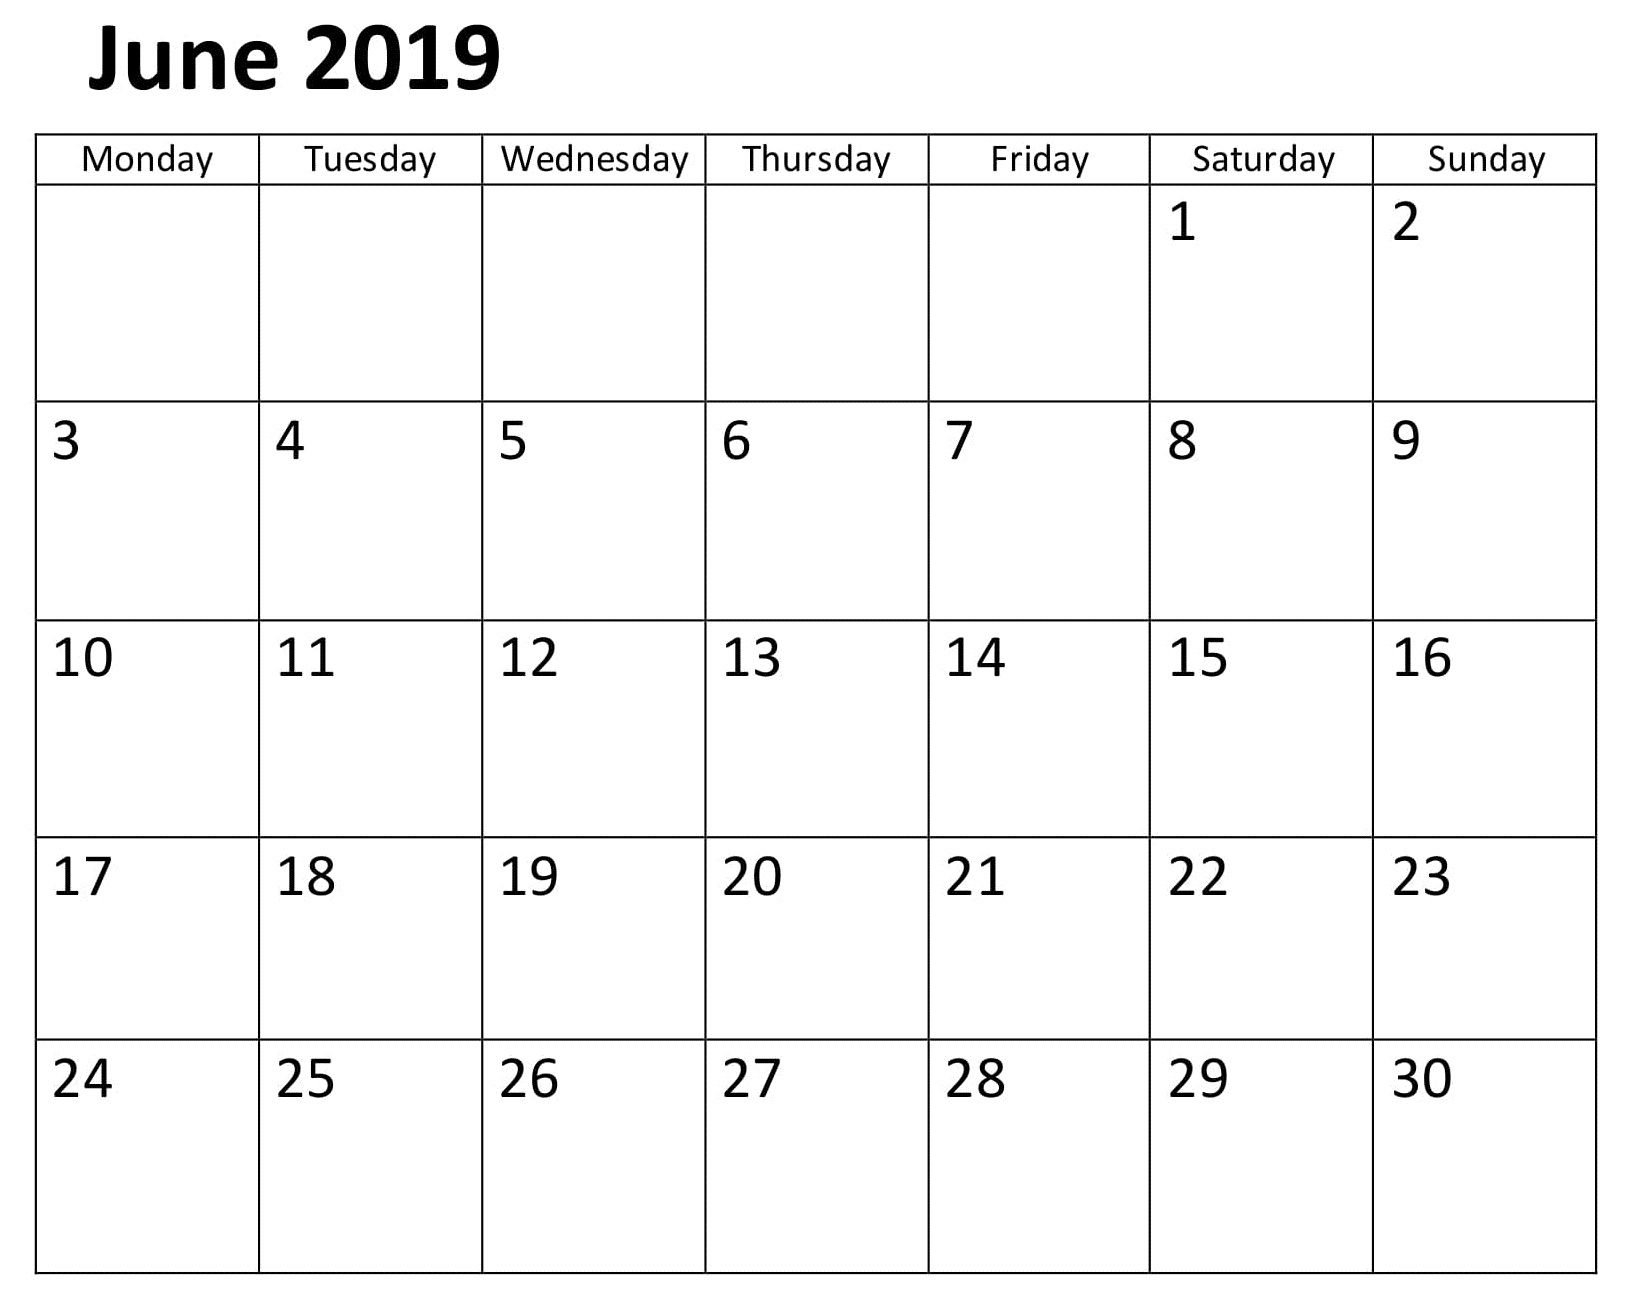 Calendar June 2019 Template Word | Calendar June 2019 | Calendar Calendar 2019 Template Word